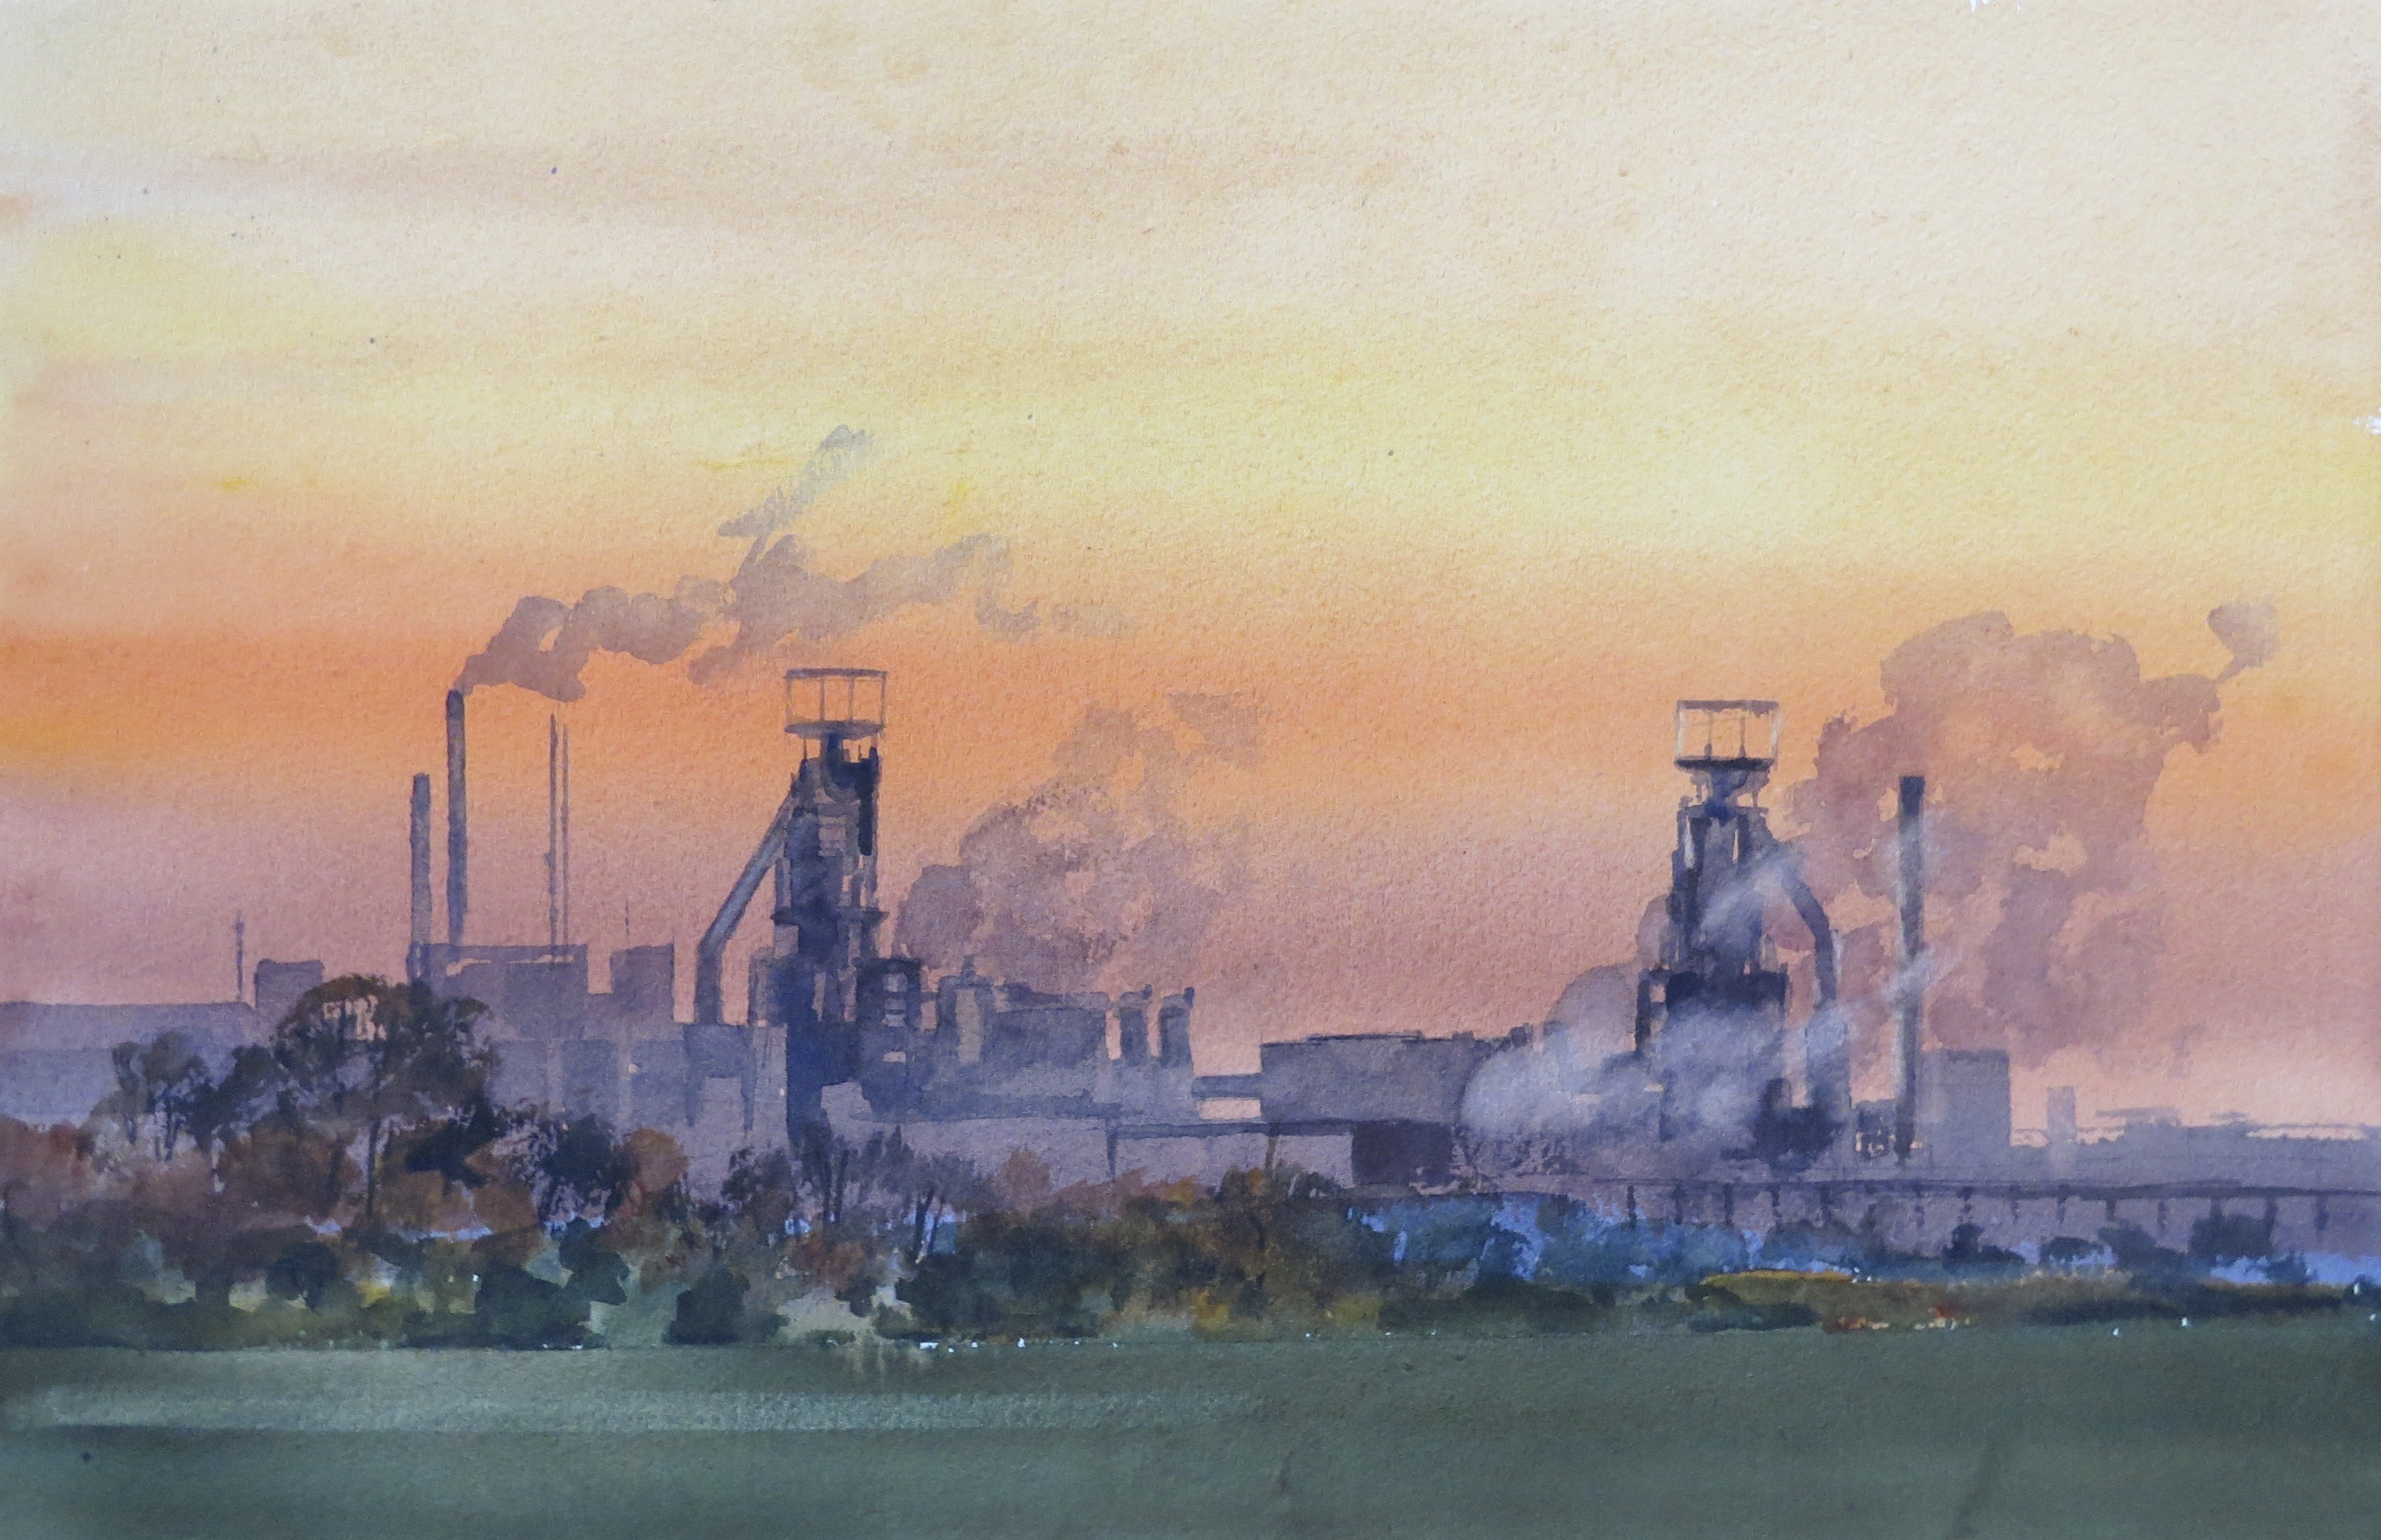 Steelworks Series No.24    33 x 50 cm    Watercolour